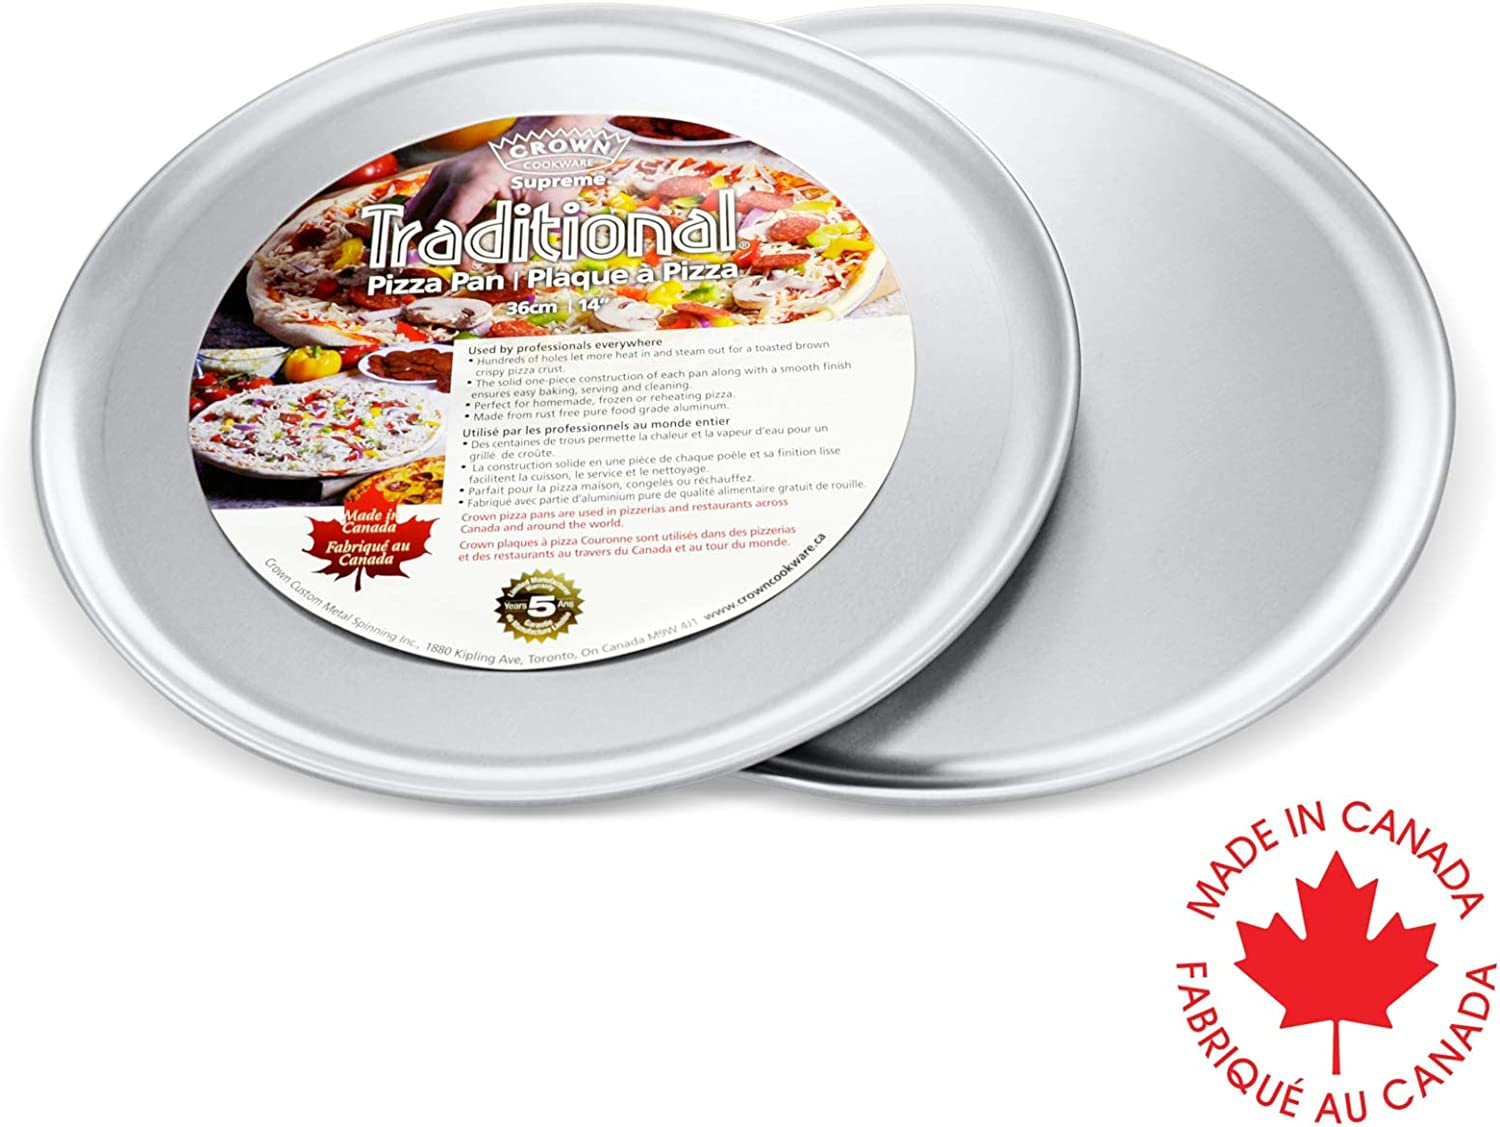 Crown Solid Pizza Pan 10 inch, 2 Pack, Pizza Tray for Oven, Extra Sturdy, Pure Food-Grade Aluminum, Easy to Clean, Sizes 10-16 inch Available